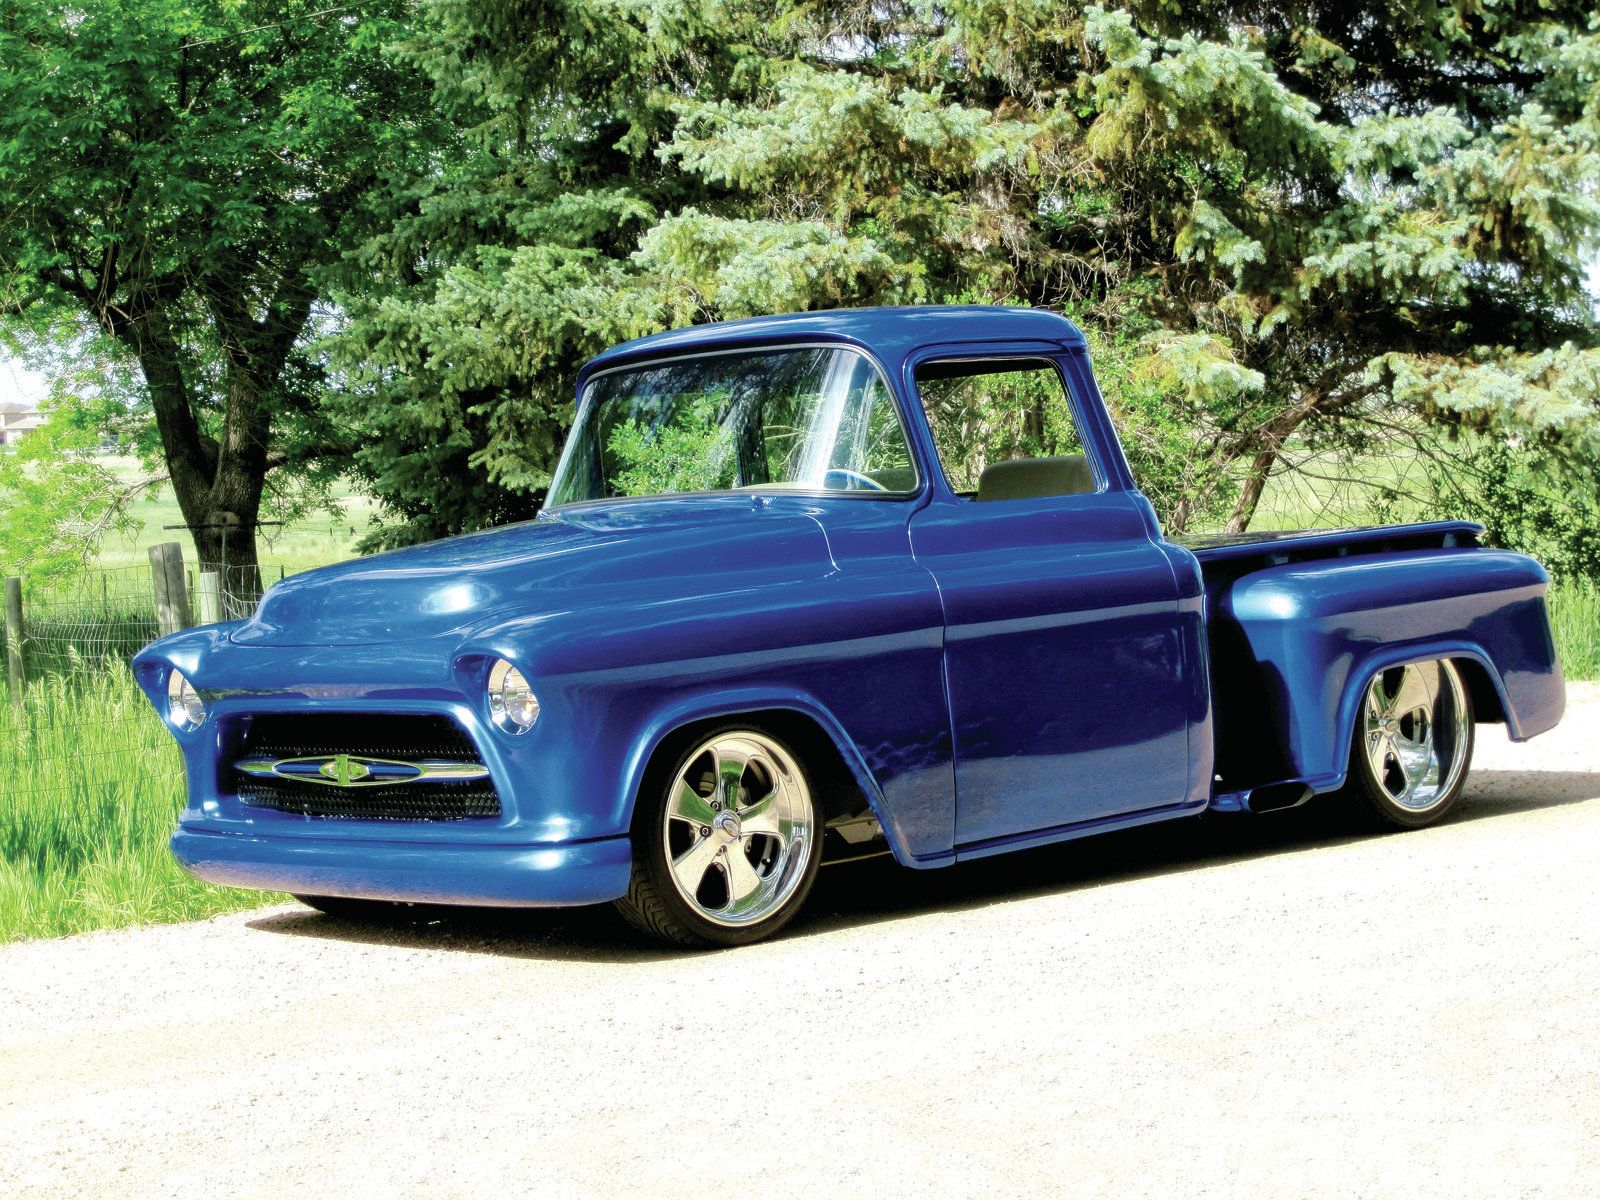 1955 chevrolet hot rod truck pictures to pin on pinterest - 1955 Chevy Truck 1955 Chevrolet Truck Side